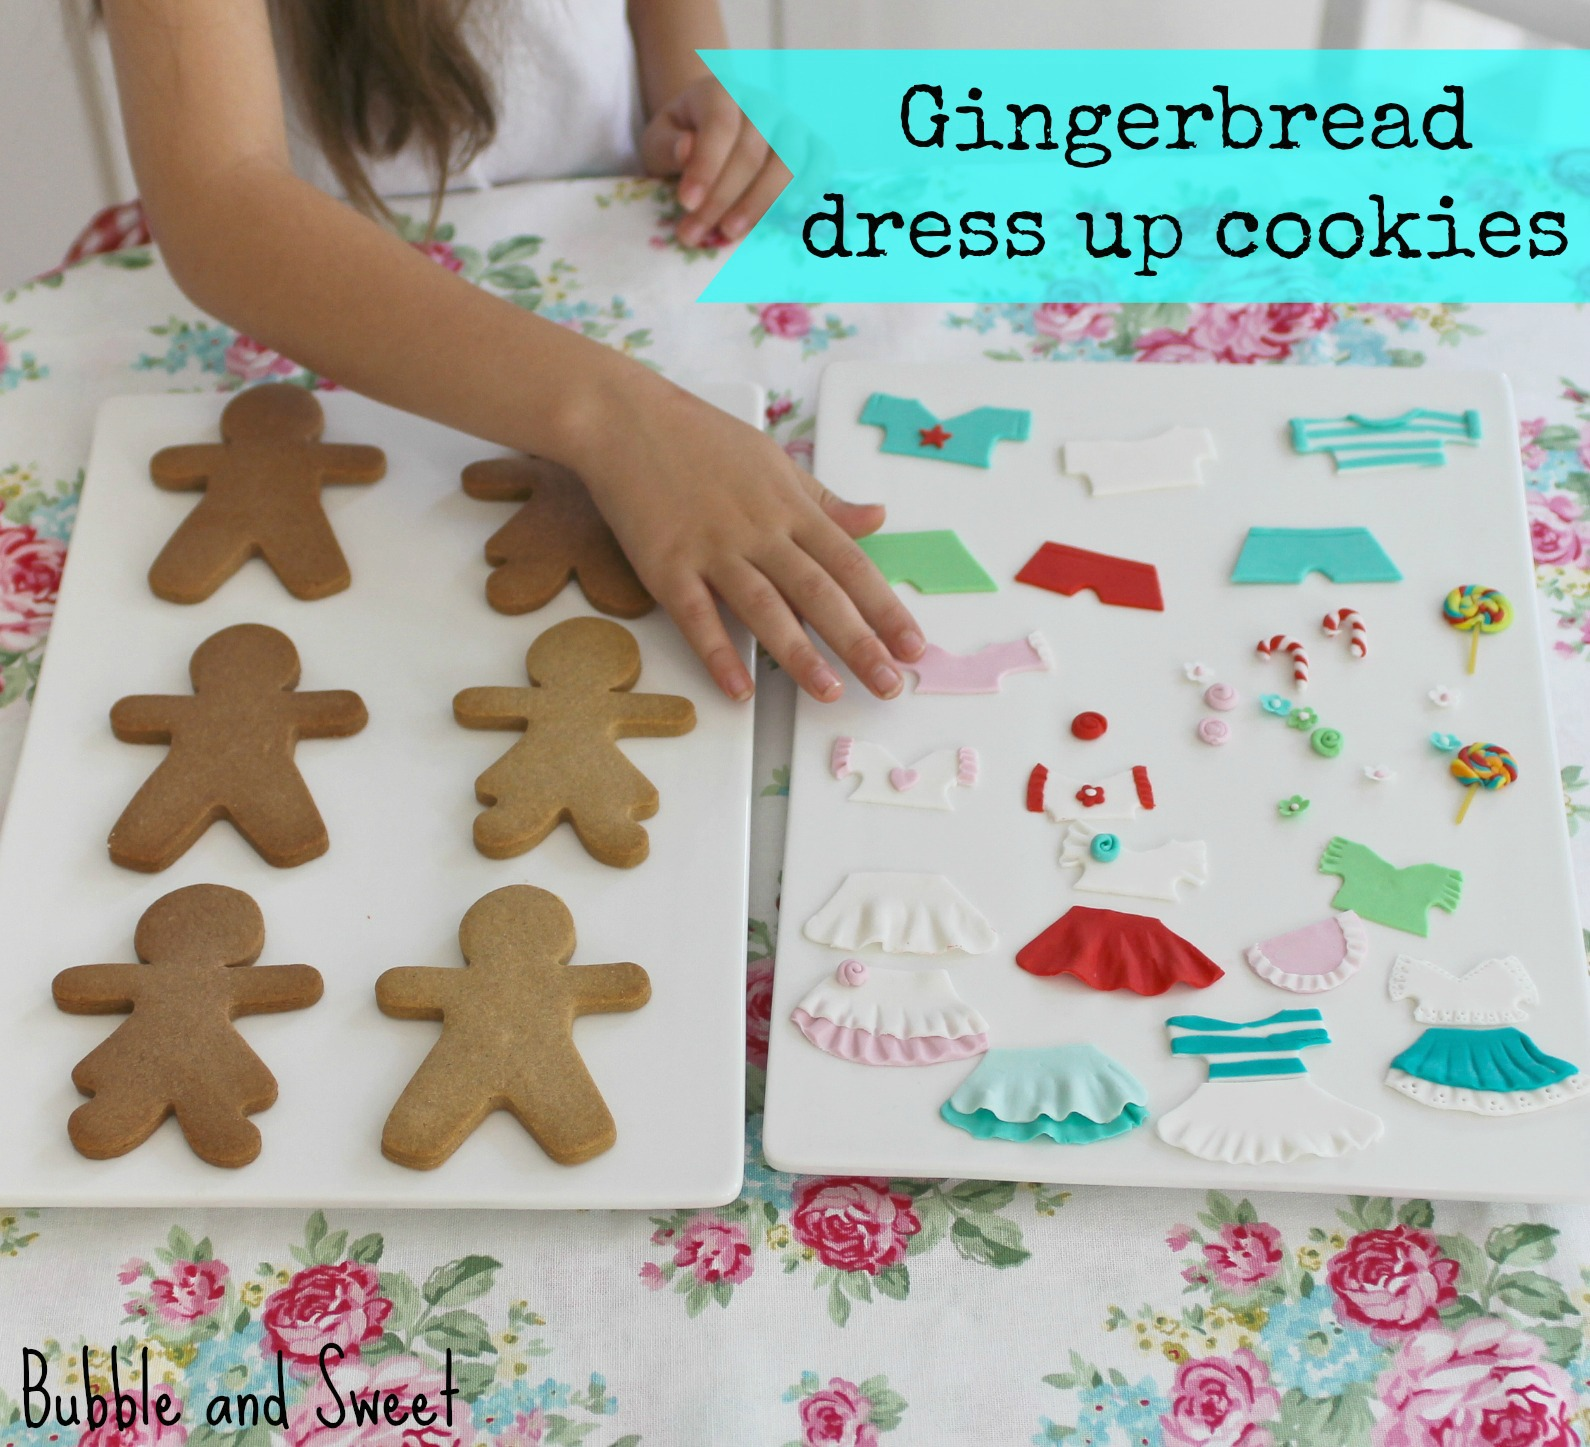 Bubble and sweet gingerbread people dress up cookie party